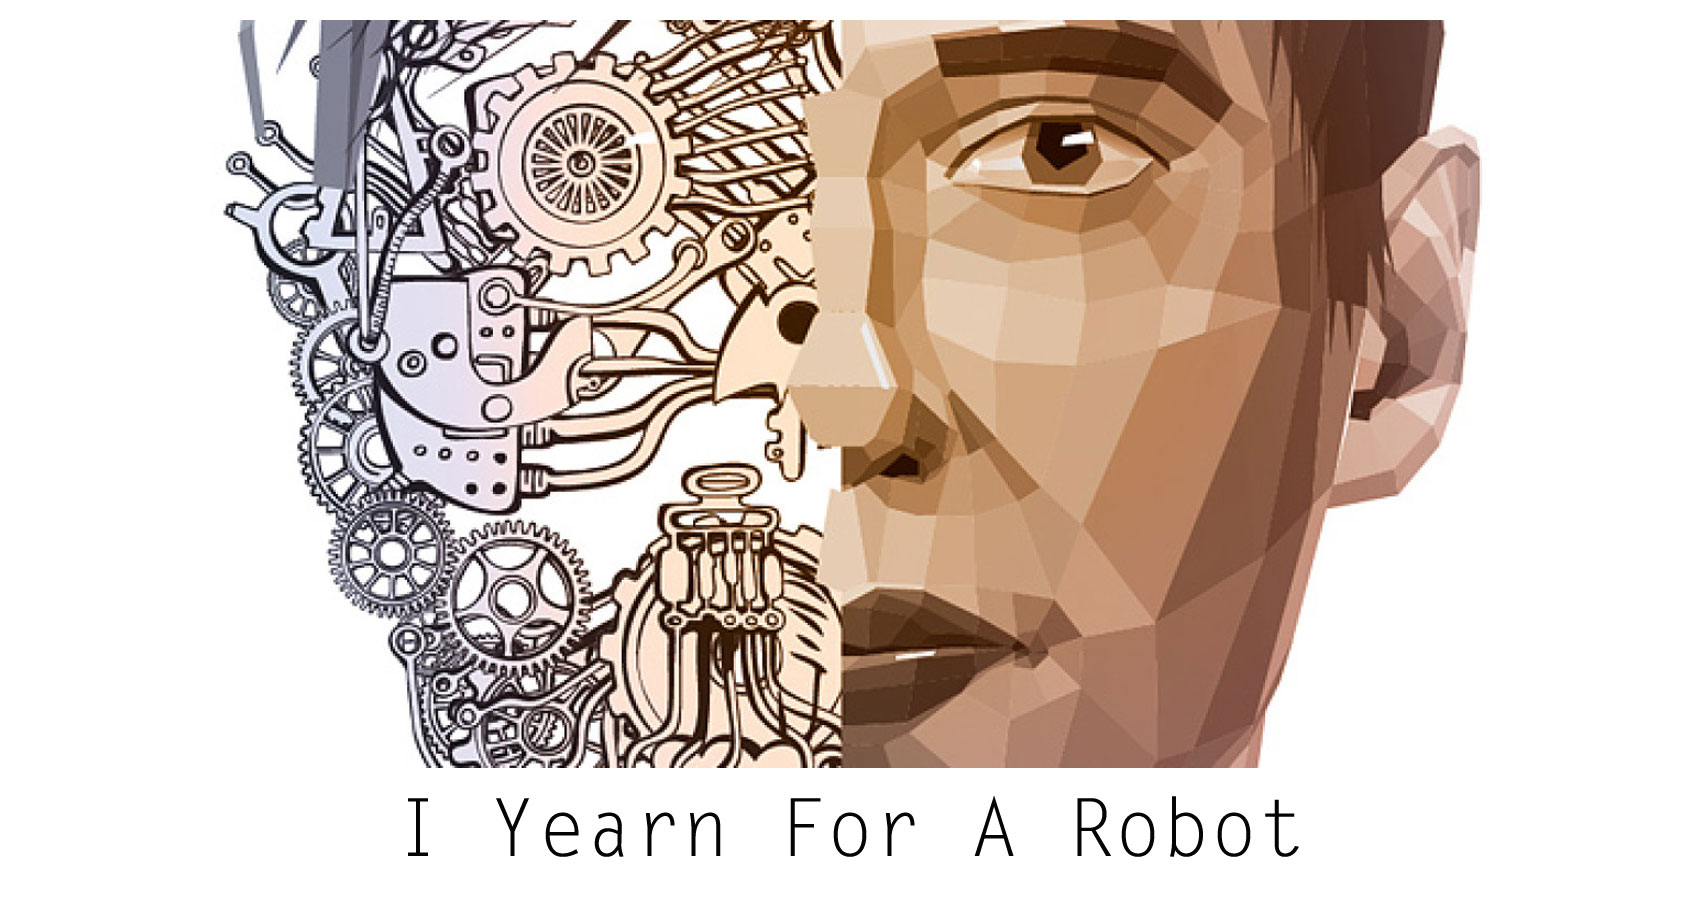 I Yearn For A Robot by bhargavi at Spillwords.com